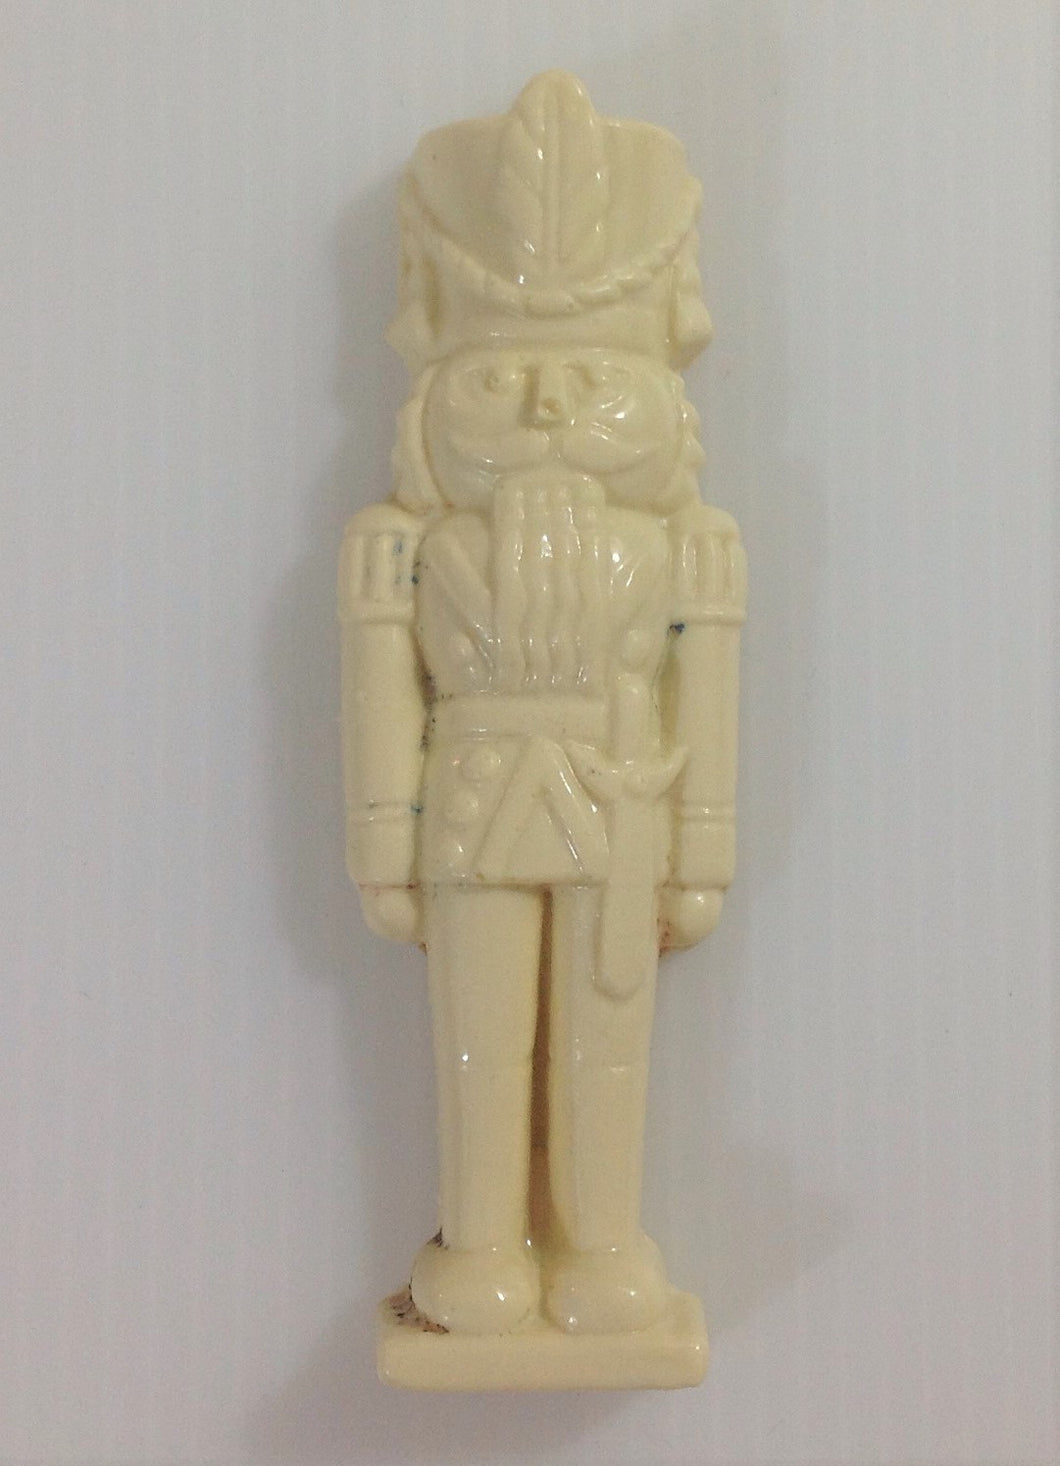 Soldier Nutcracker silicone mold